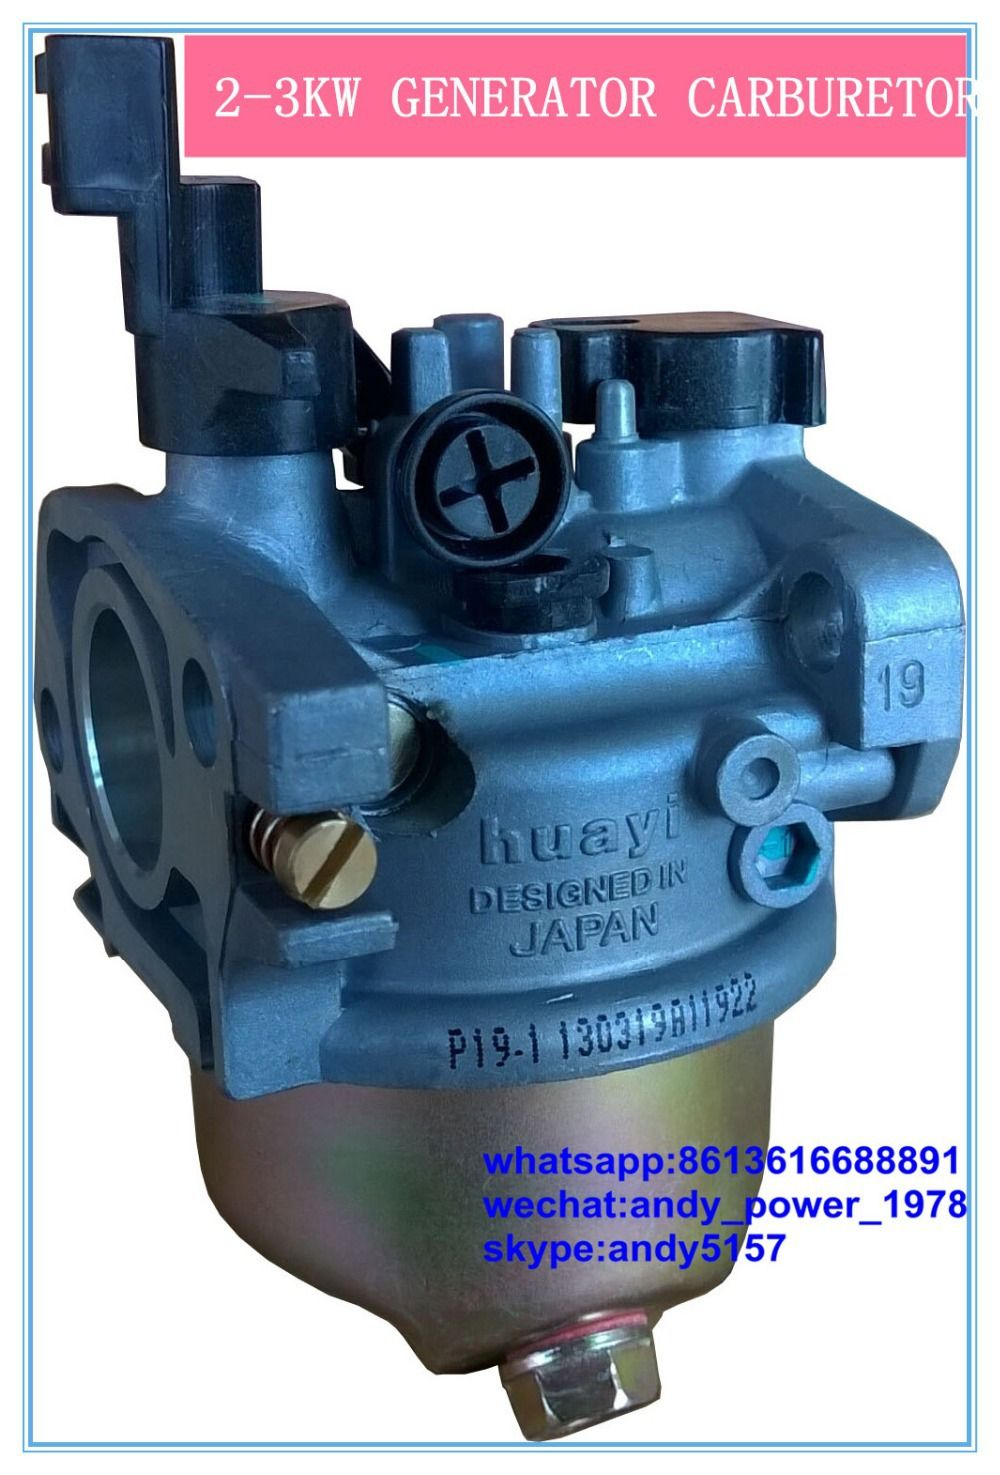 Aliexpress Com Buy Details About Huayi Carburetor Generator Gx160 Gx200 5 5hp 6 5hp 168f 2kw 3kw Generator From Reli Carburetor Generation Generator Parts